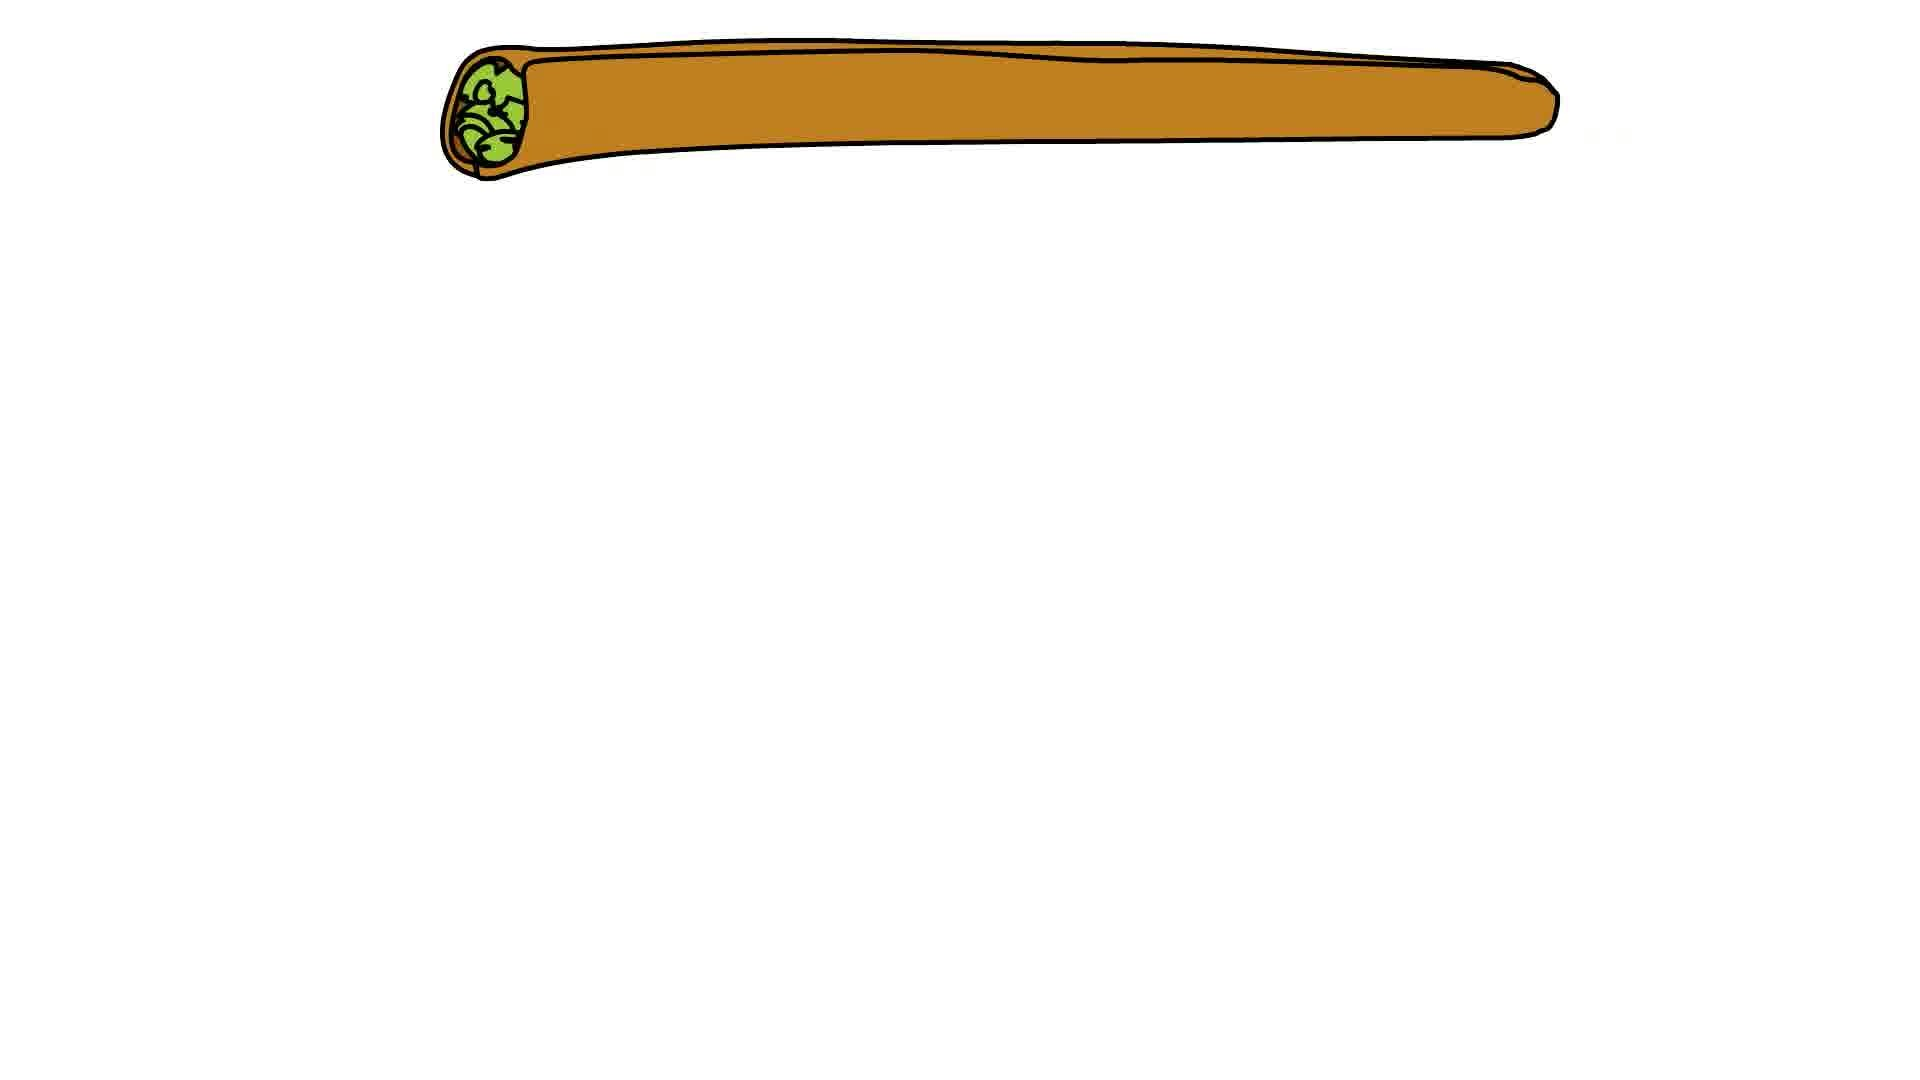 Blunts clipart image free stock Free Drawn Weed blunt, Download Free Clip Art on Owips.com image free stock